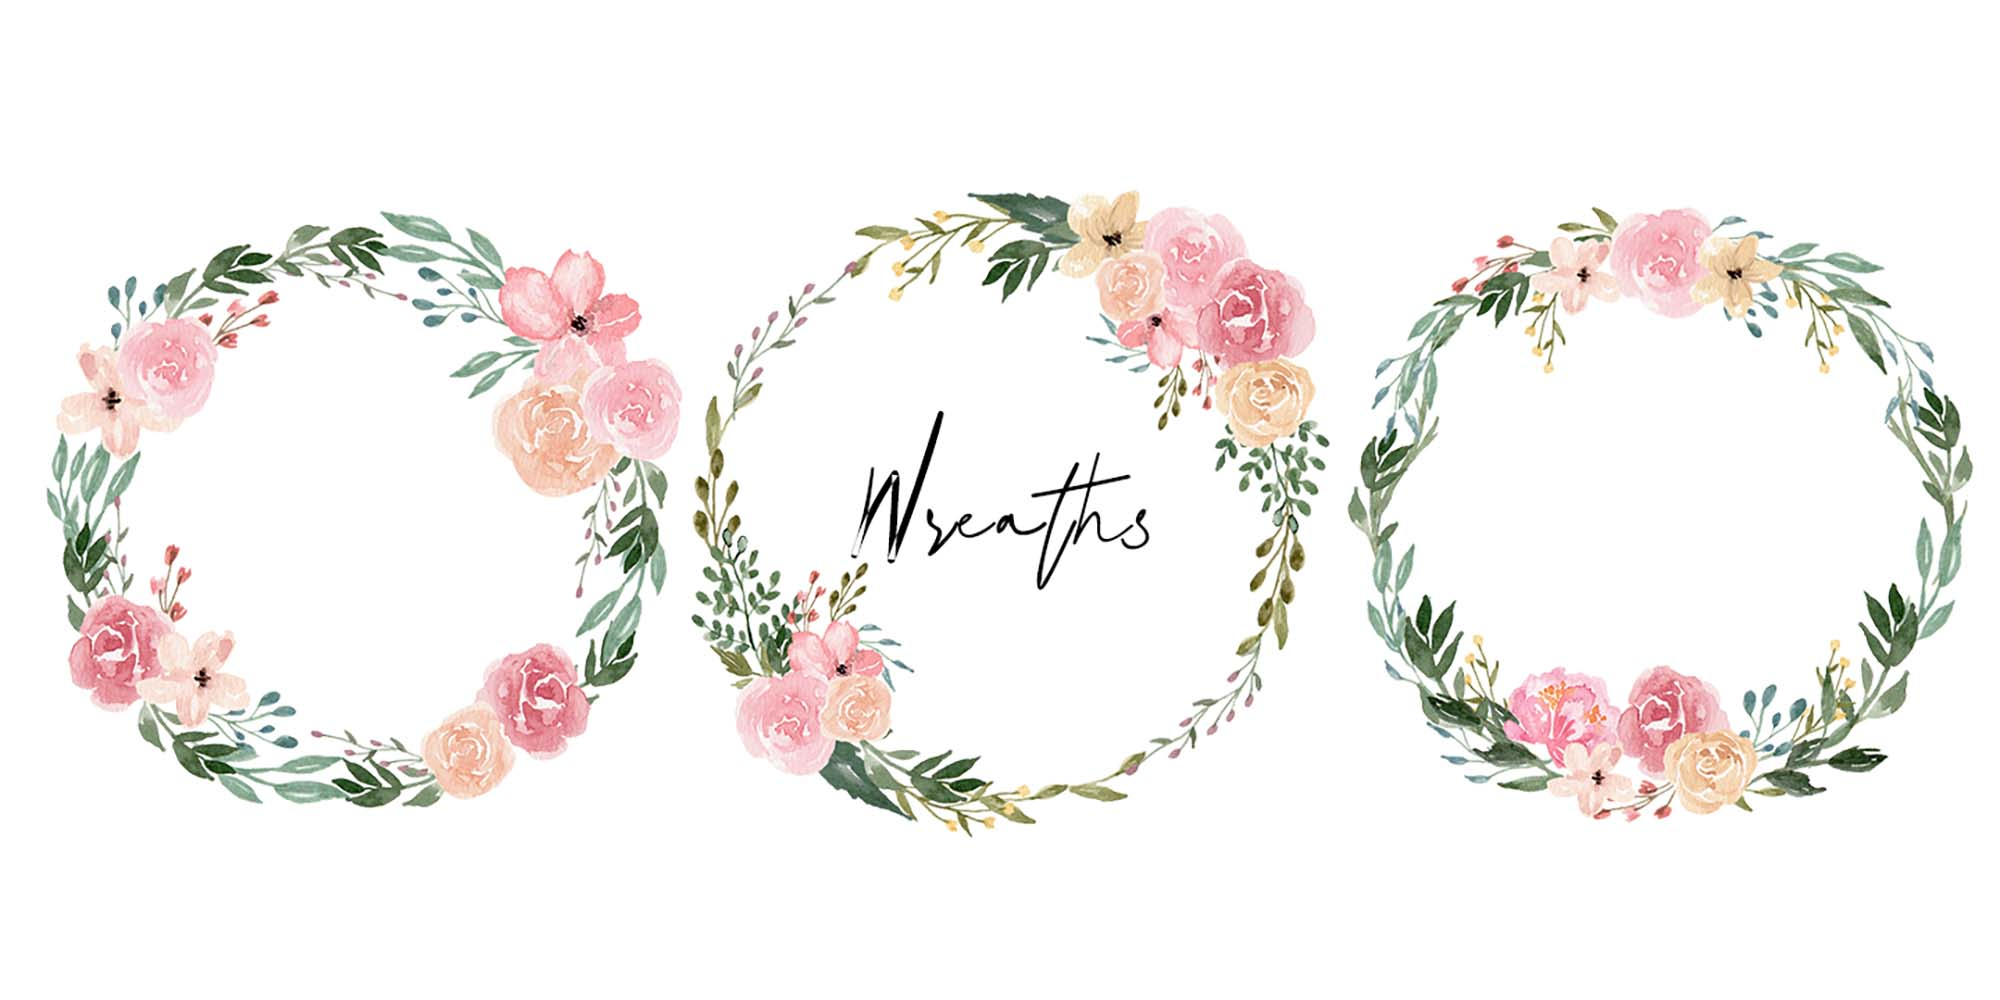 Dusty Blooms Watercolor Graphic Illustrations 4